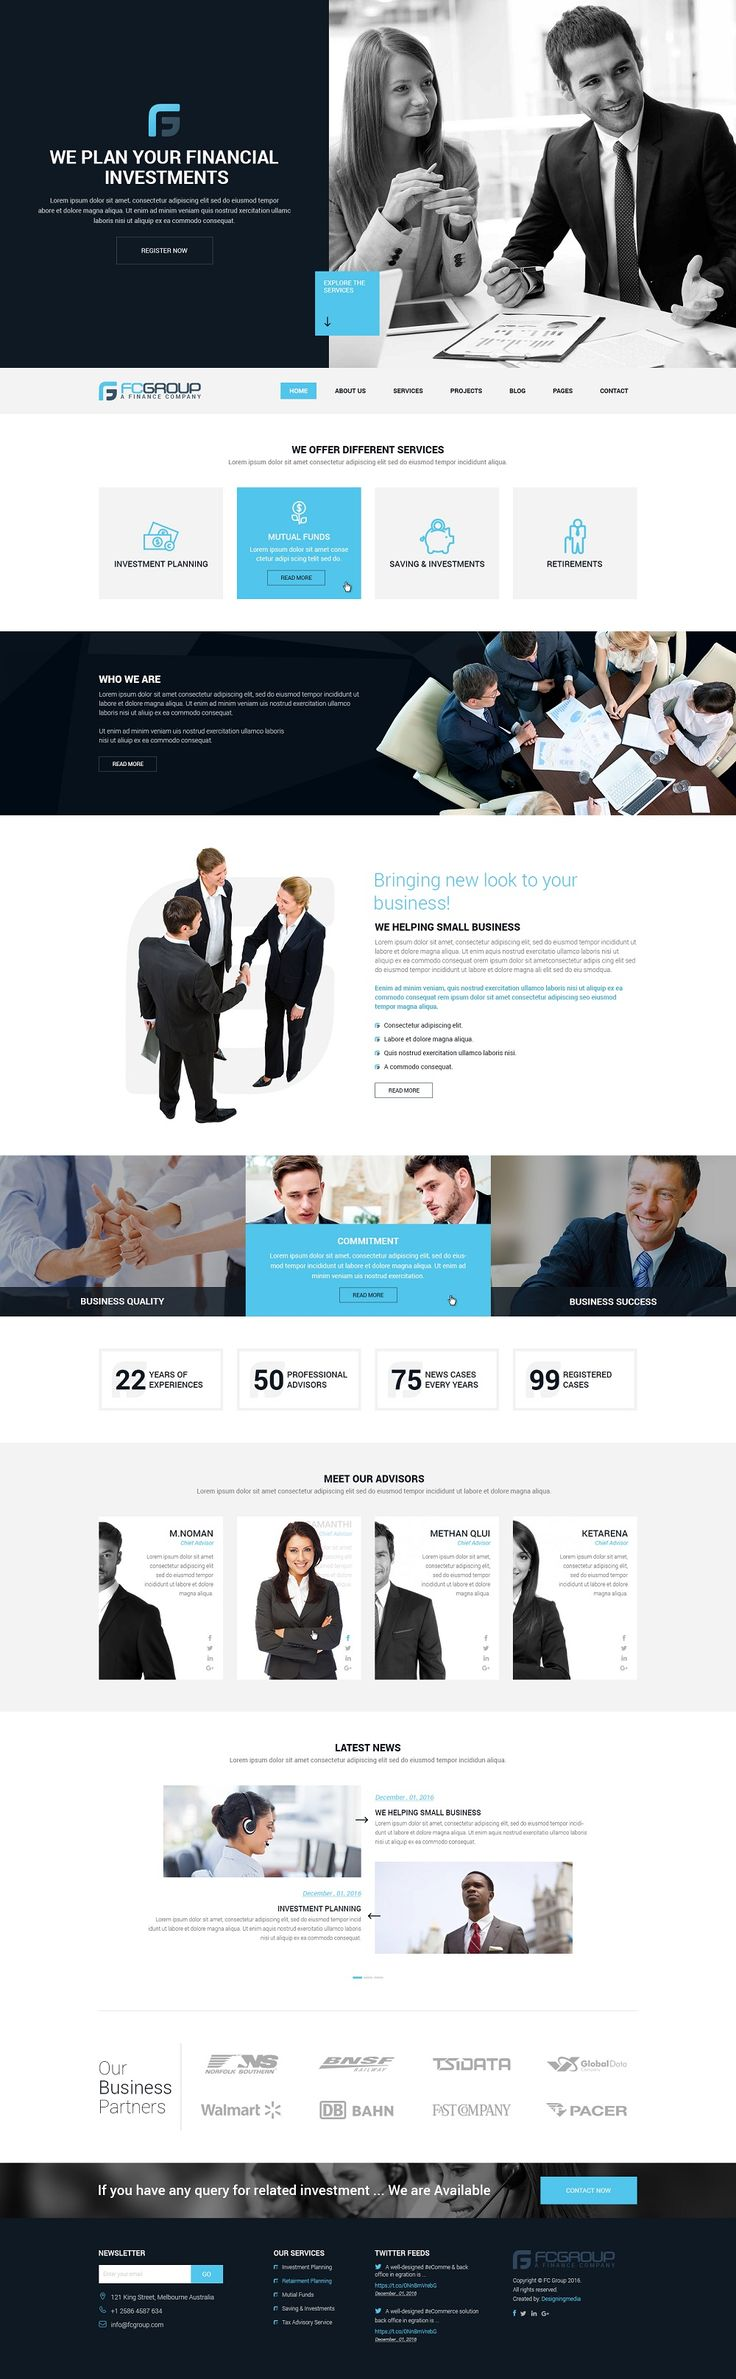 Website Theme for Business / Corporations / Agencies